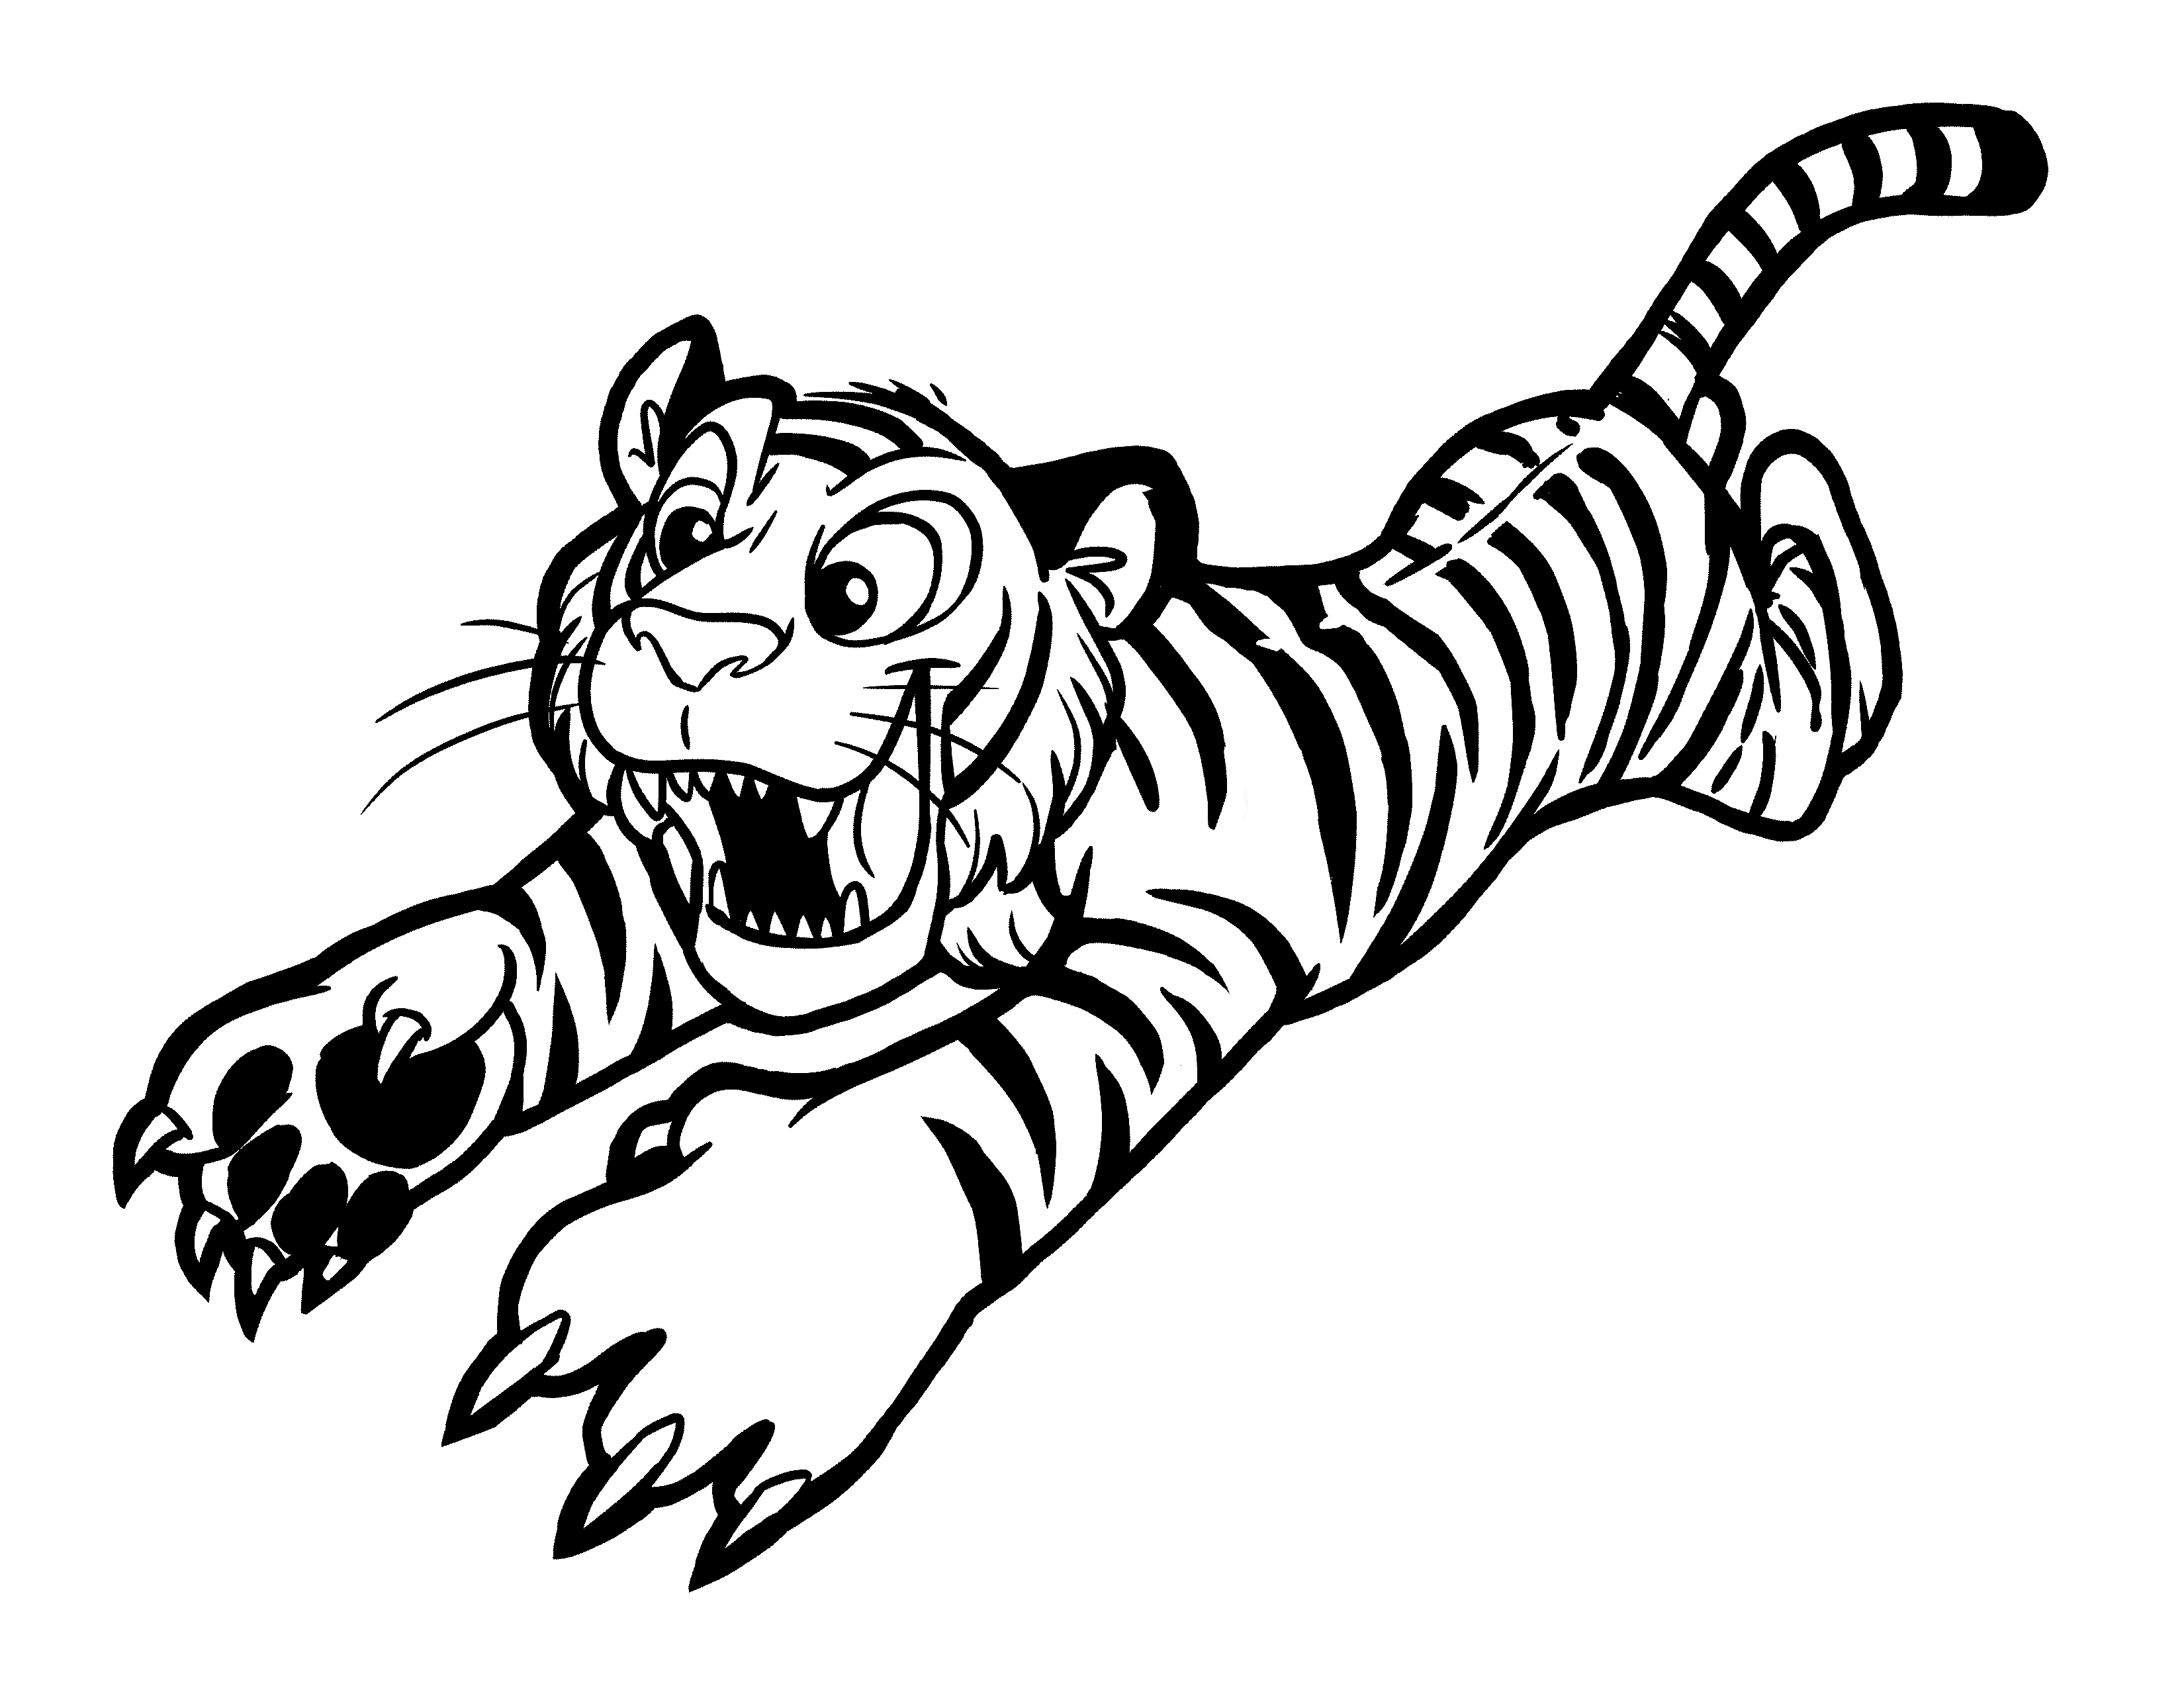 Tiger images for colouring